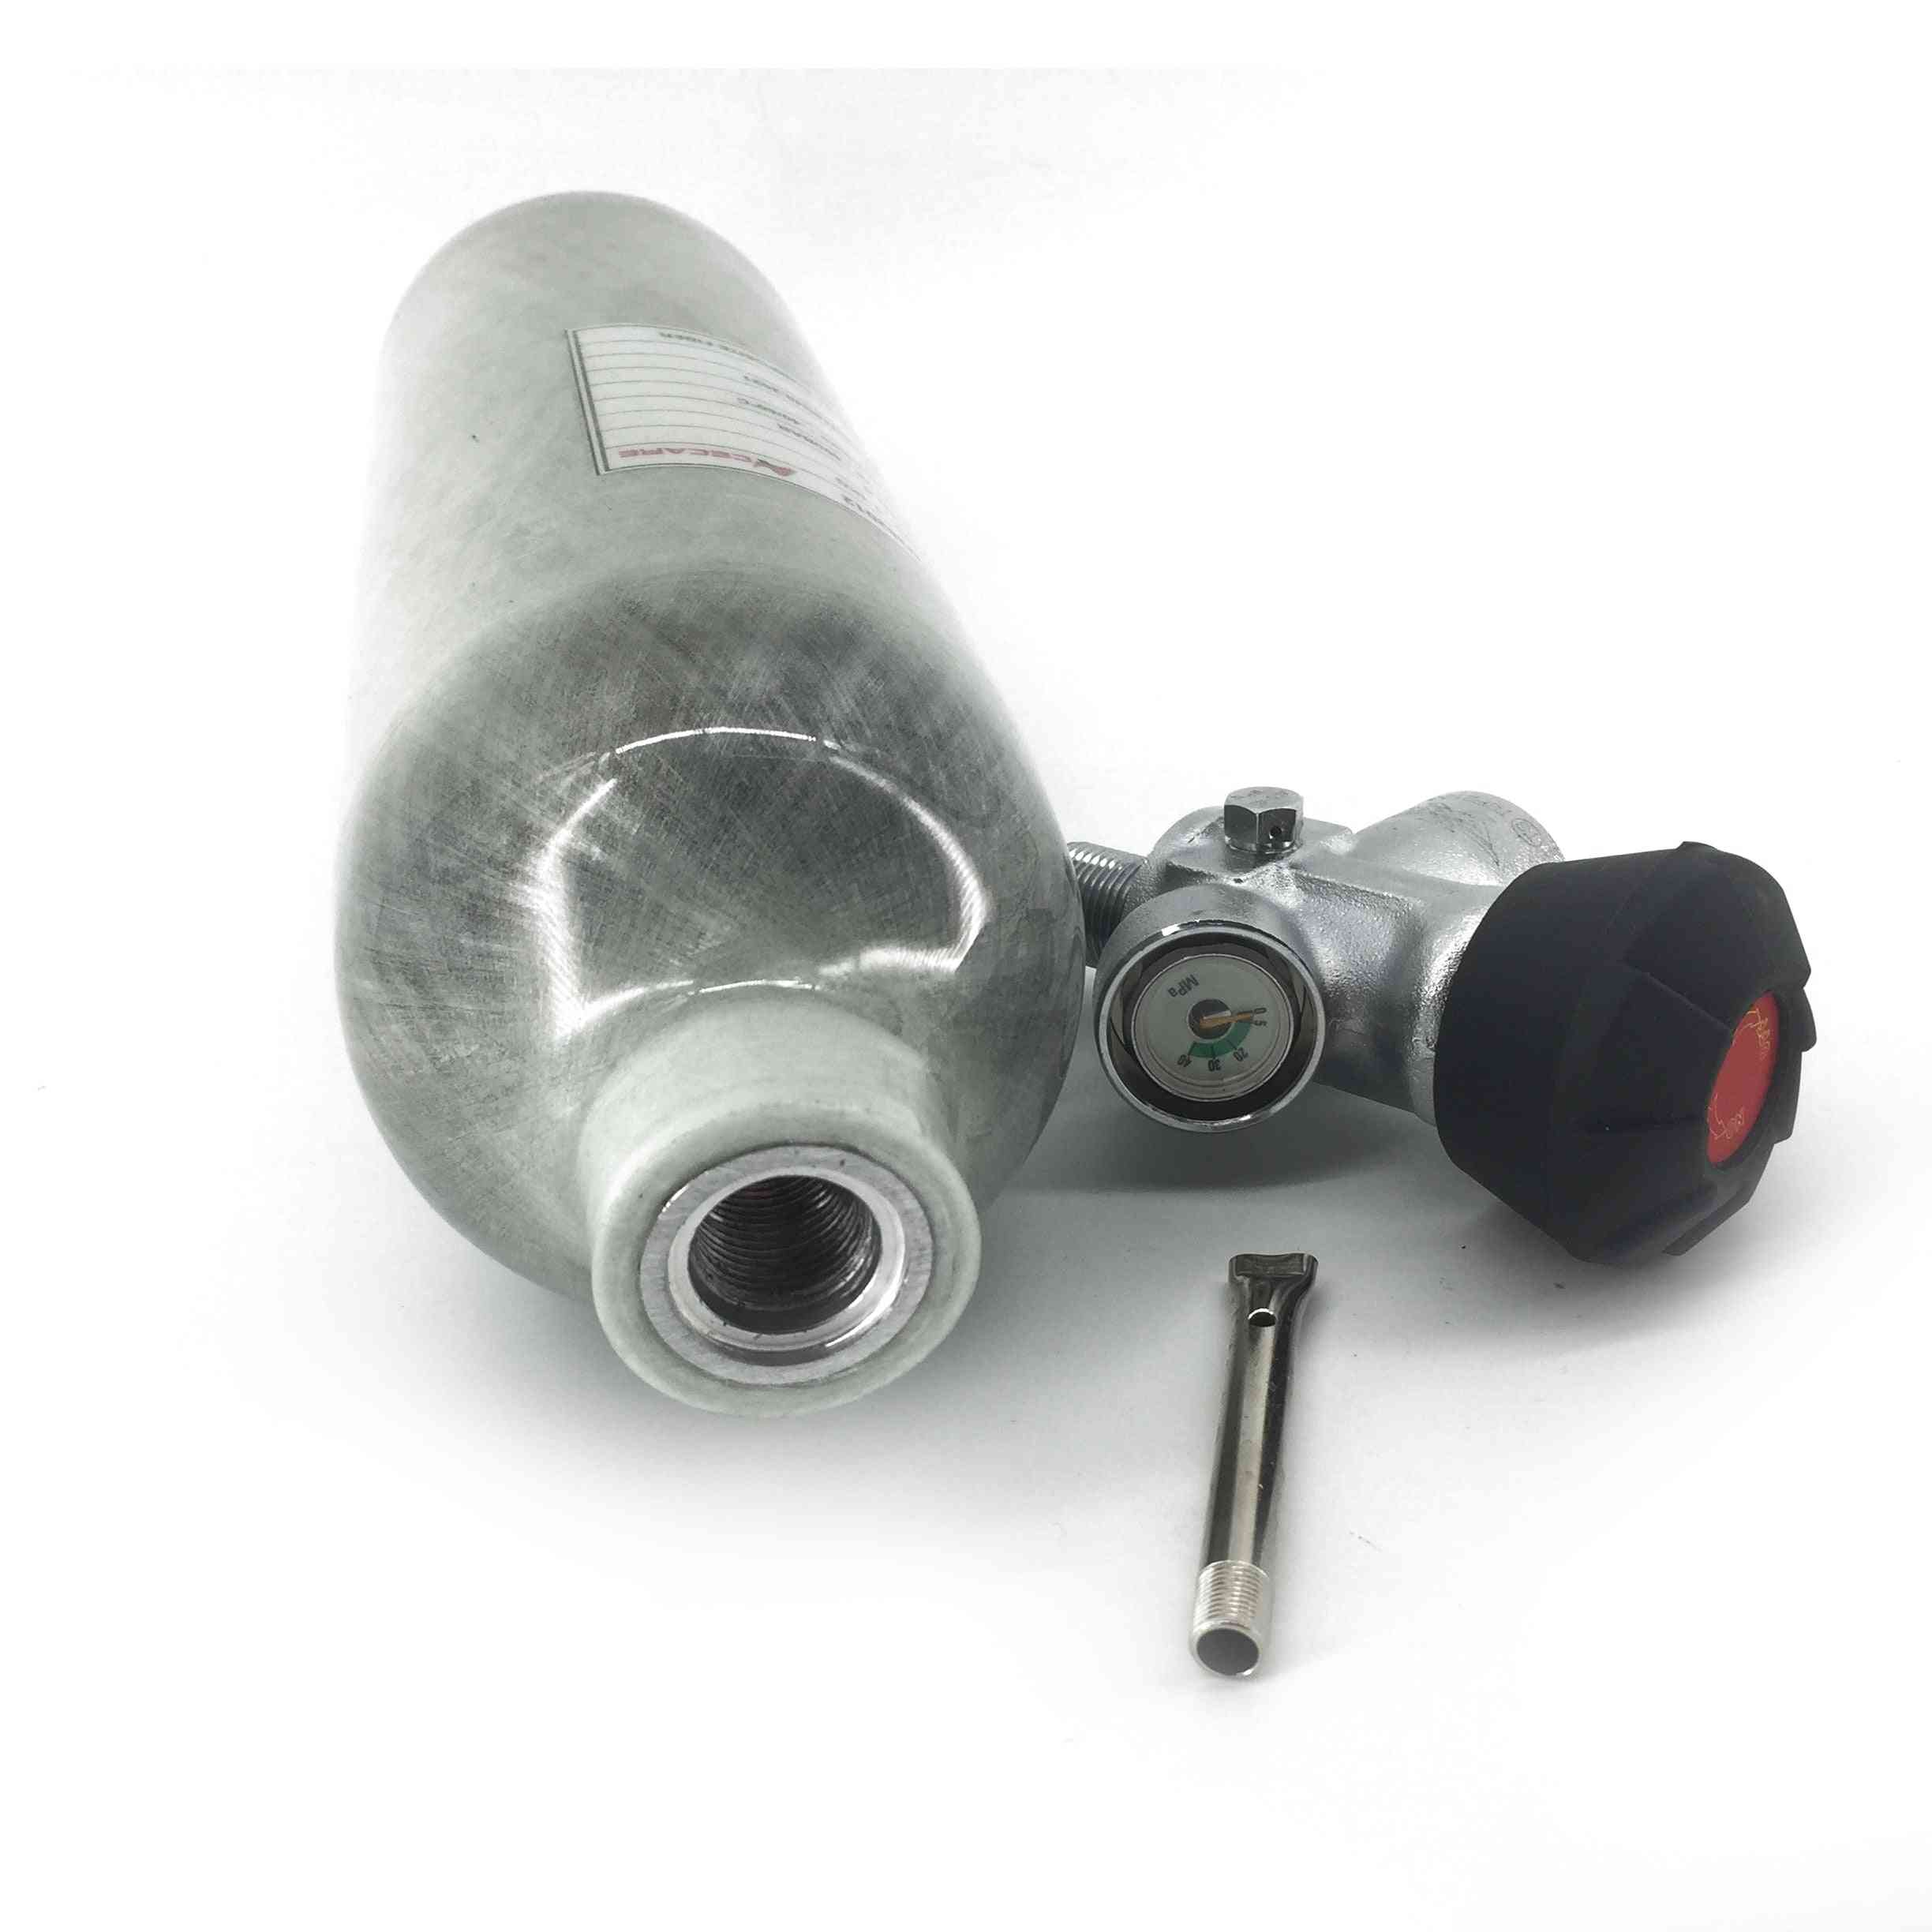 Ac3011 Paintball Tank Pcp Carbon Fiber Cylinder For Hunting Airforce With Valve